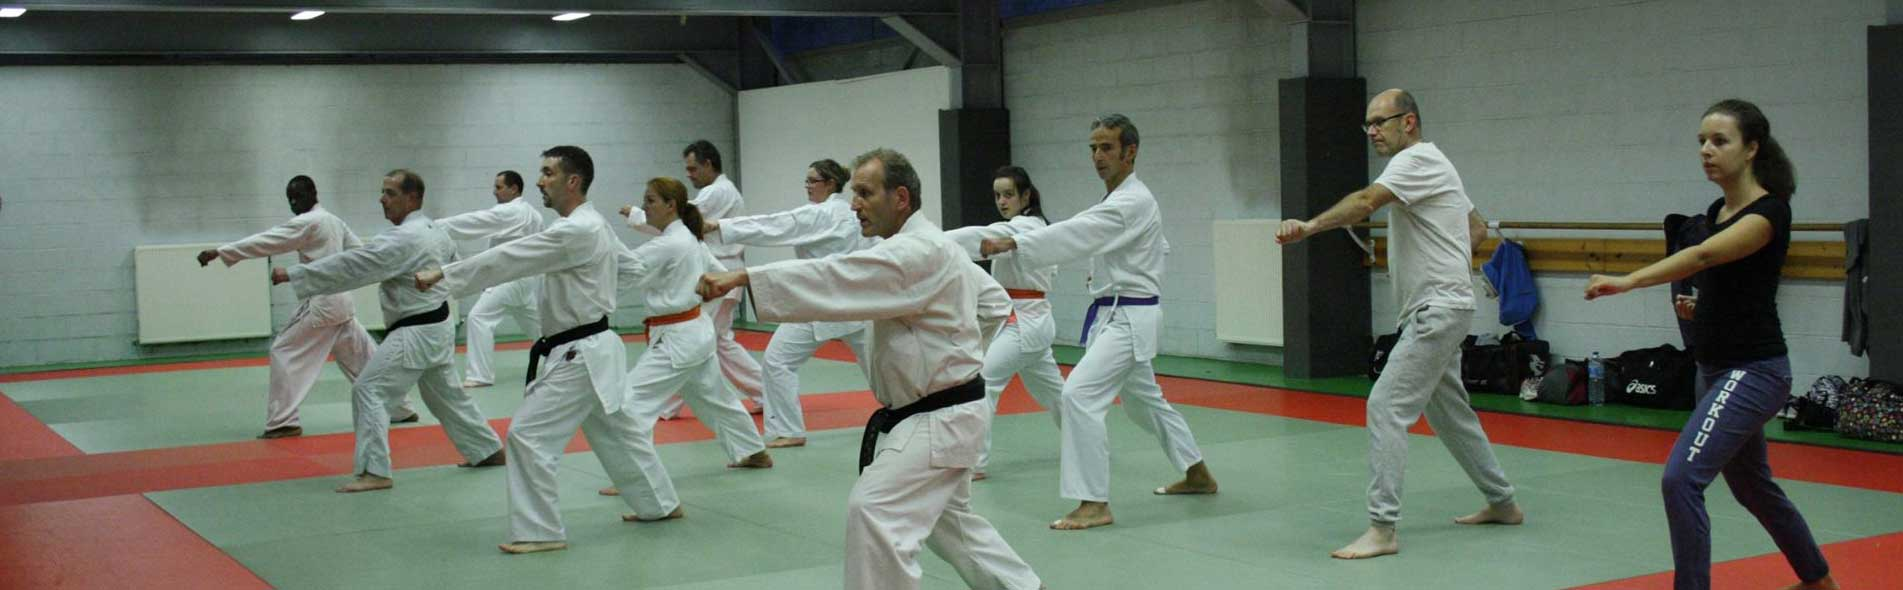 club karate louviers